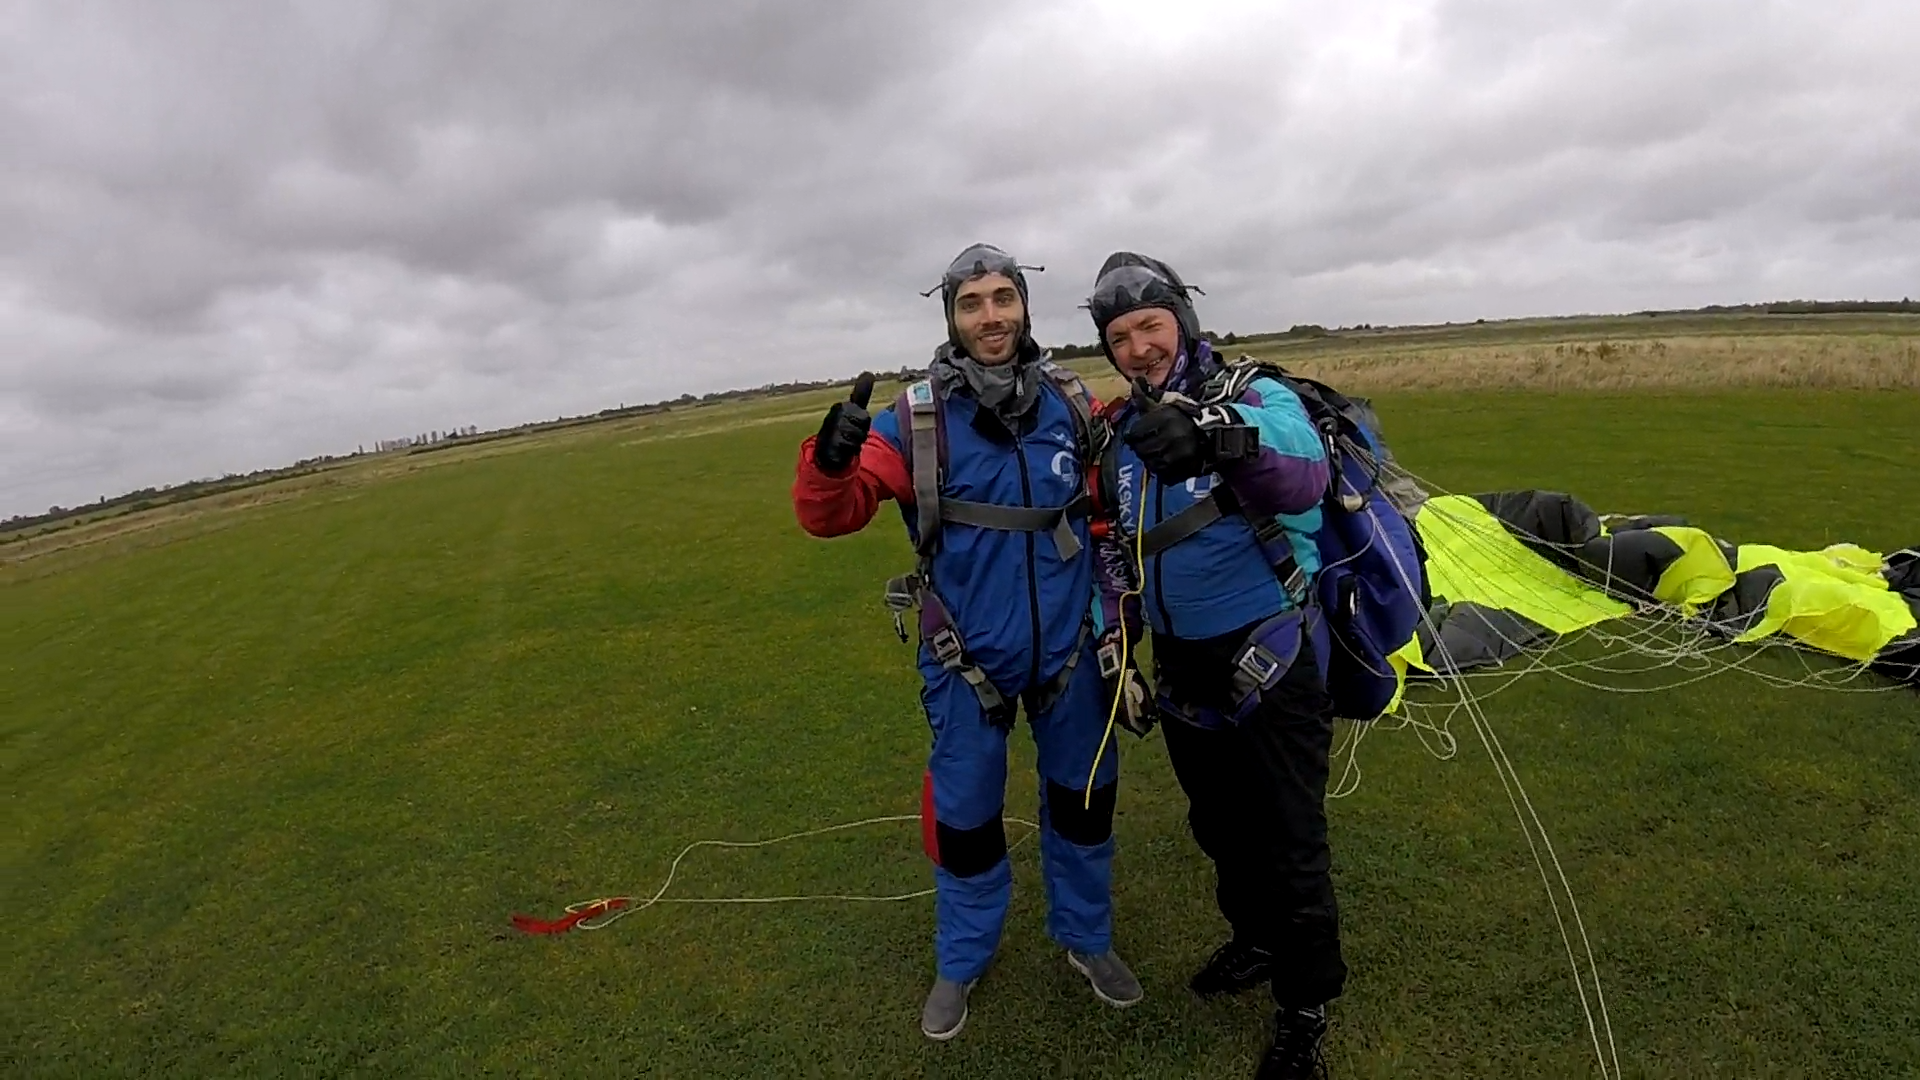 Emanuel Tomozei , lead developer on the project after a successful tandem skydive together with instructor, Nick Wilson, from North London skydiving